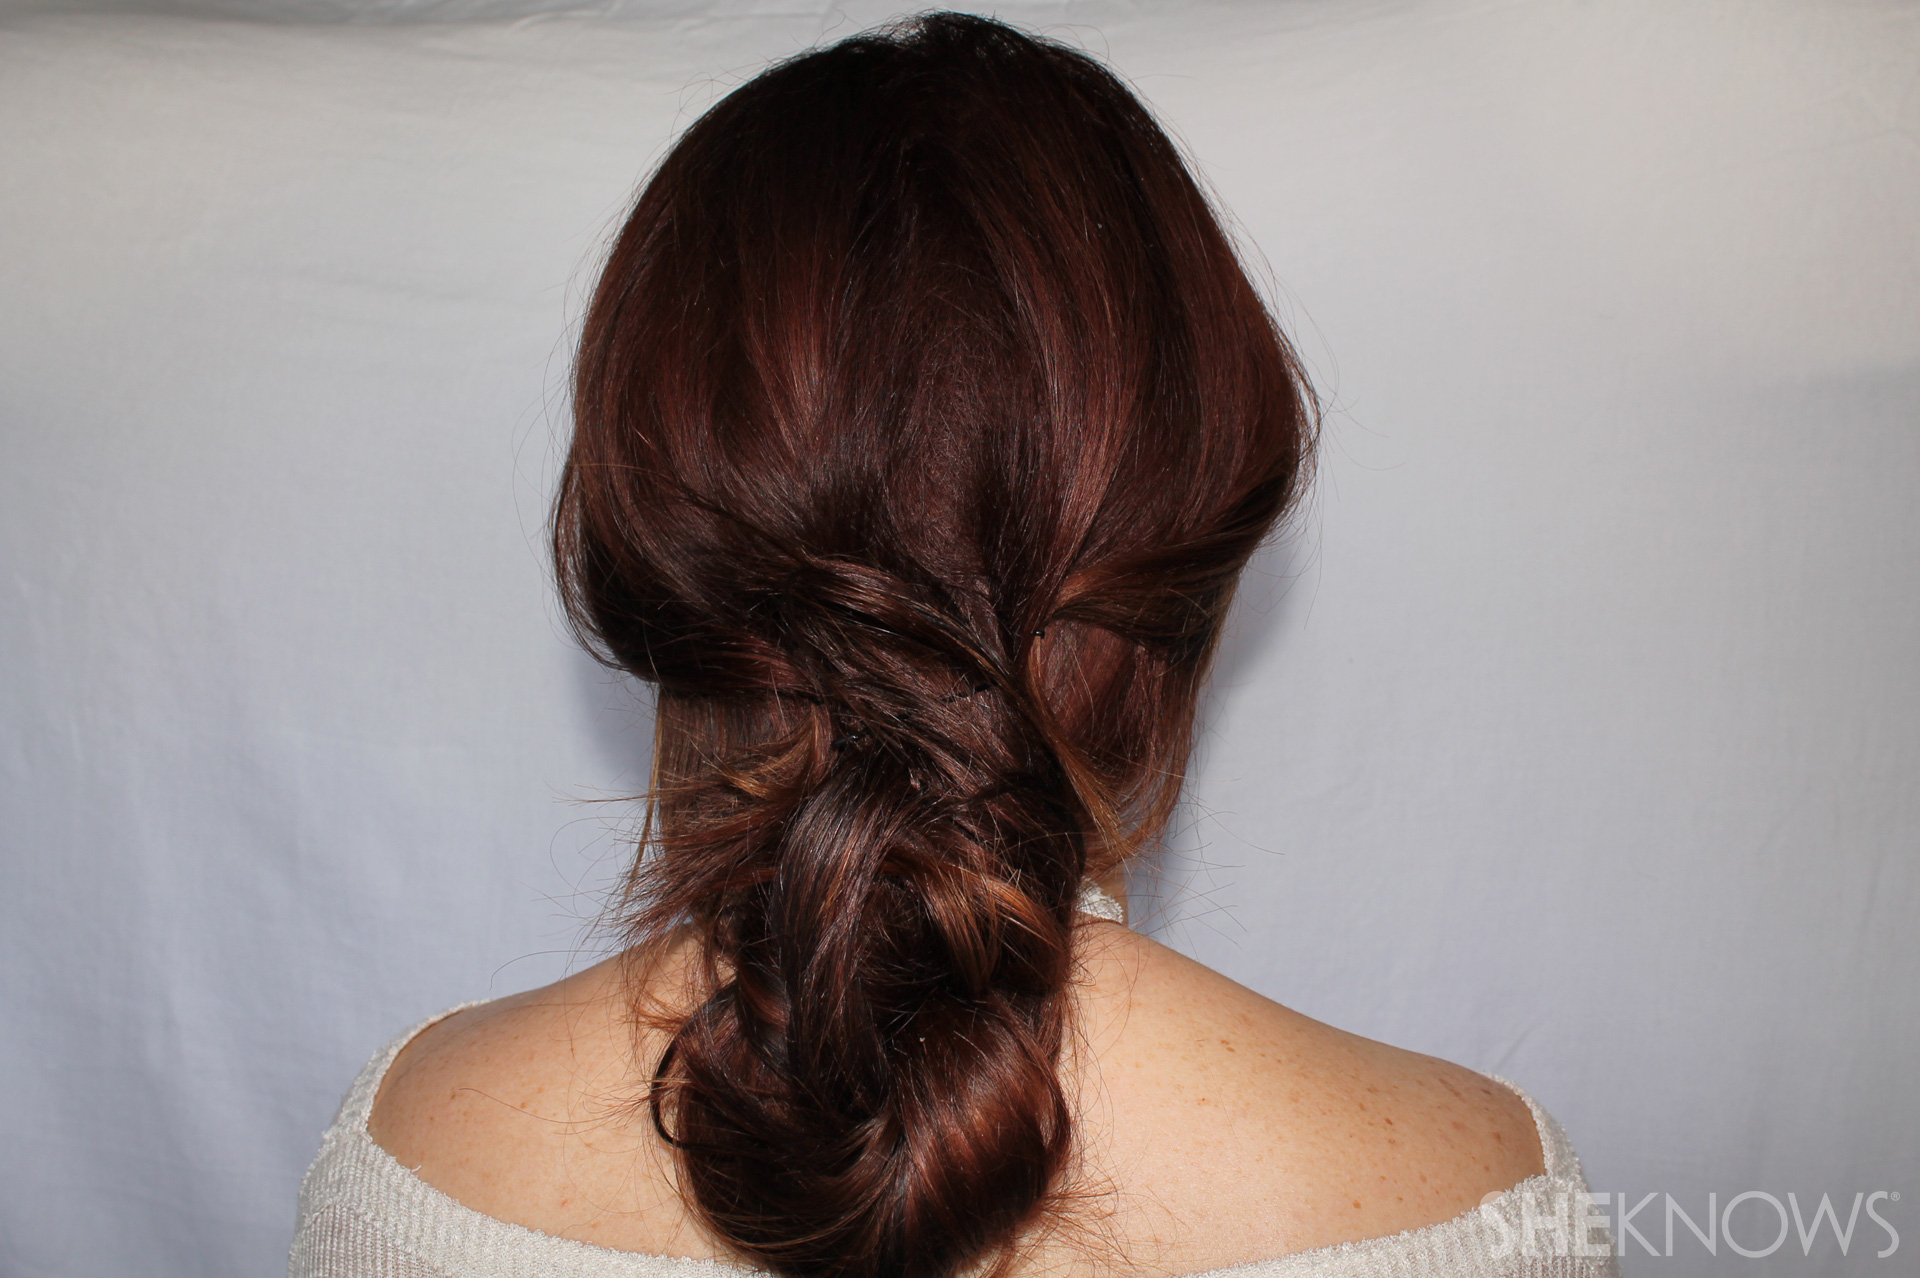 Knotted Messy Bun Step 4: Finished